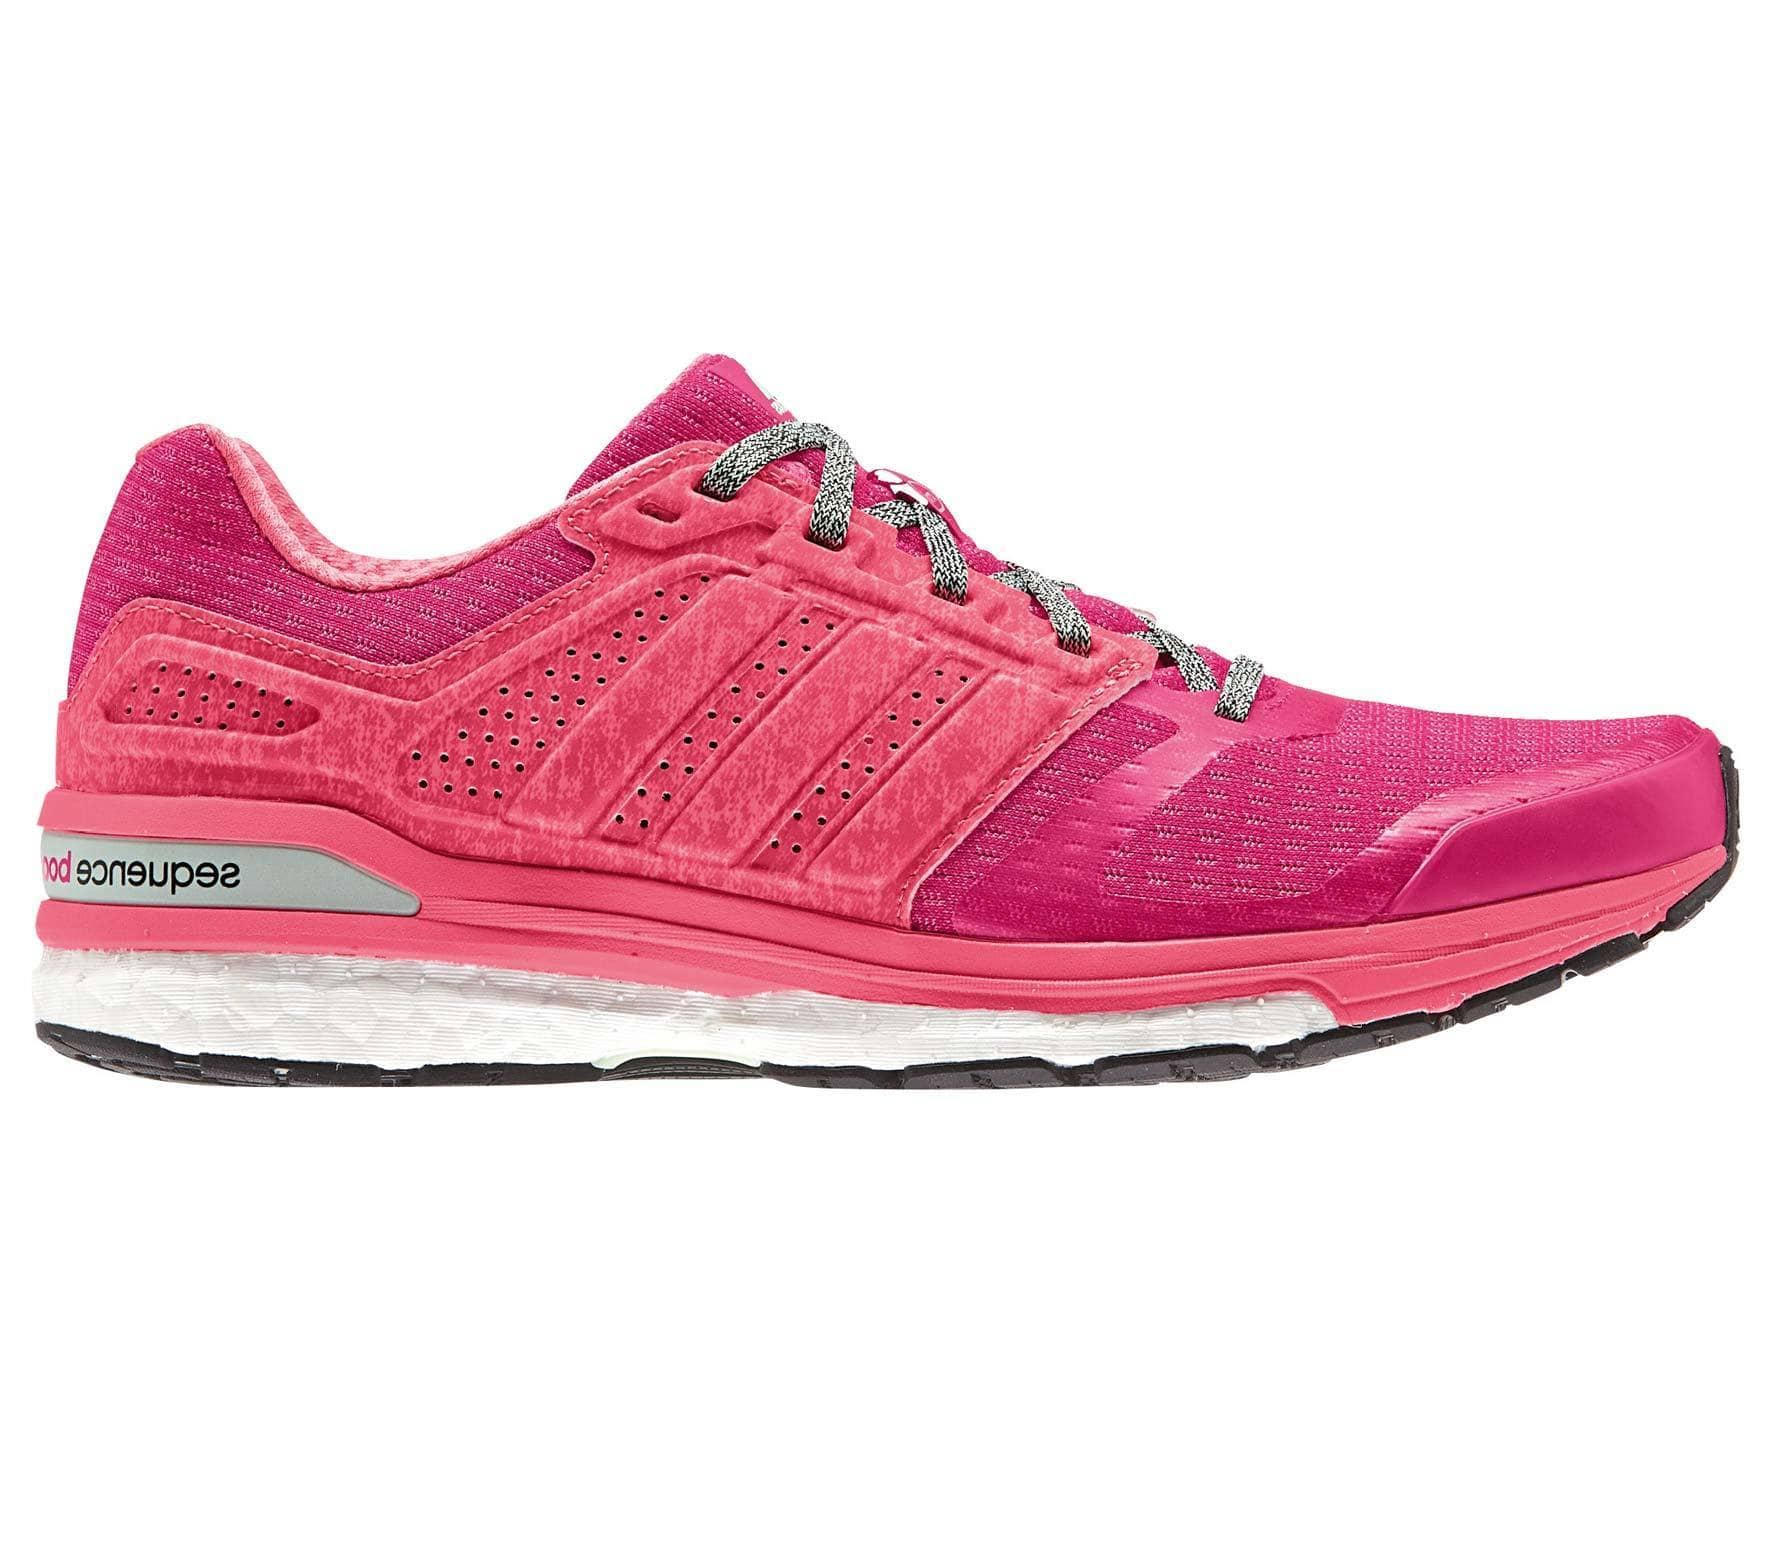 adidas Supernova Sequence Boost 8 women's running shoes Donna